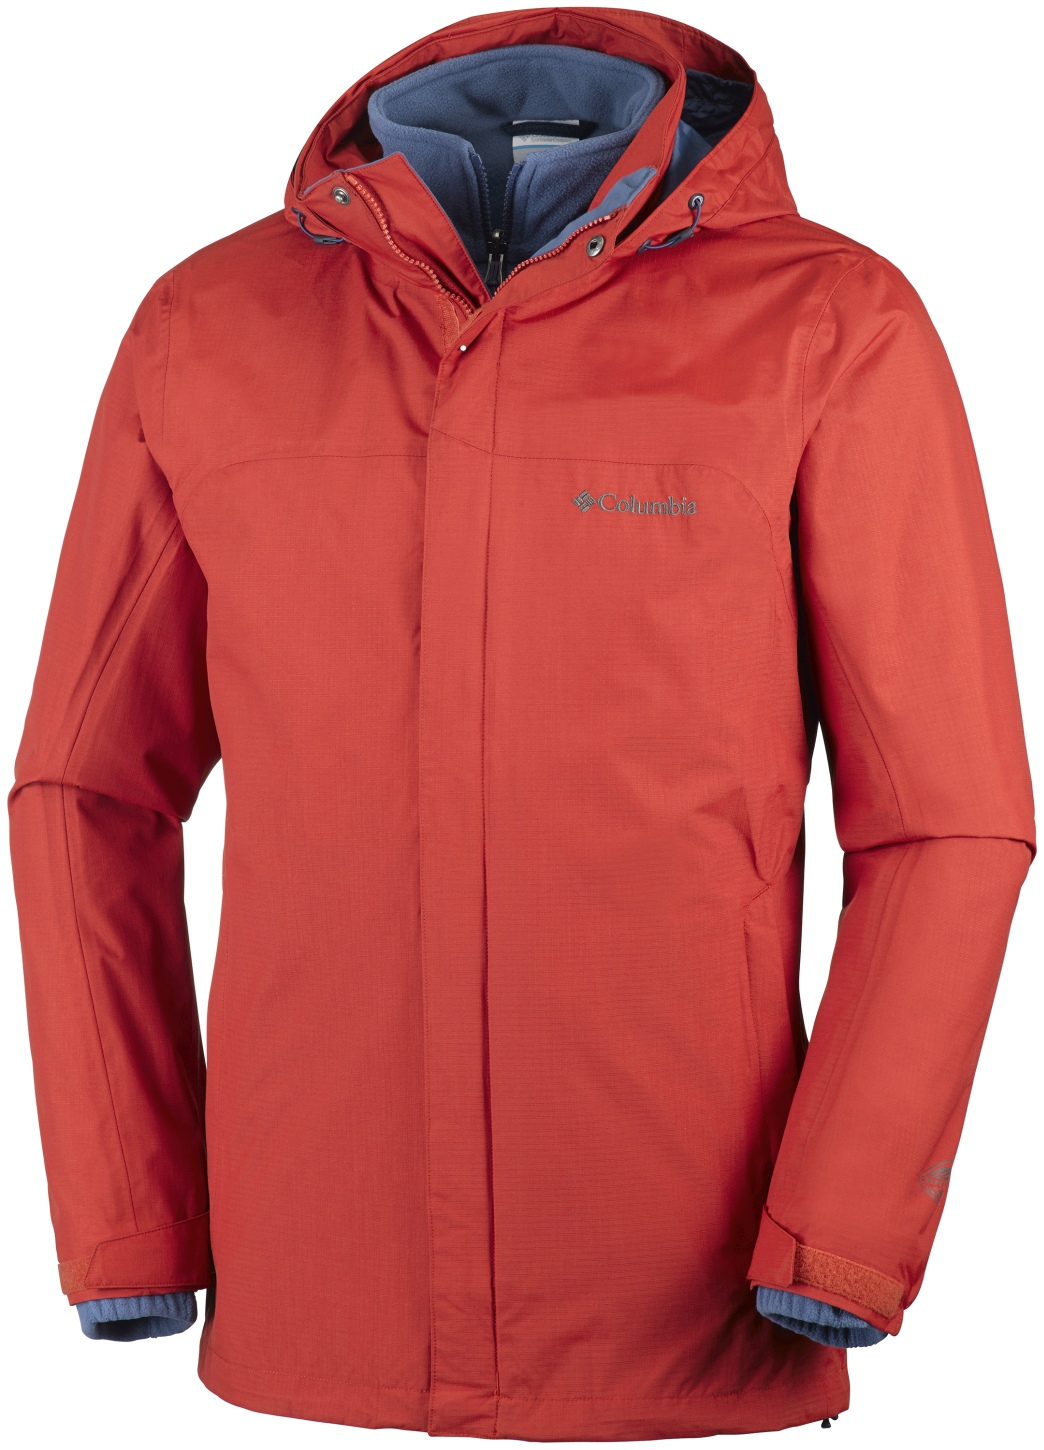 Columbia Men's Mission Air Interchange Jacket Rust Red-30